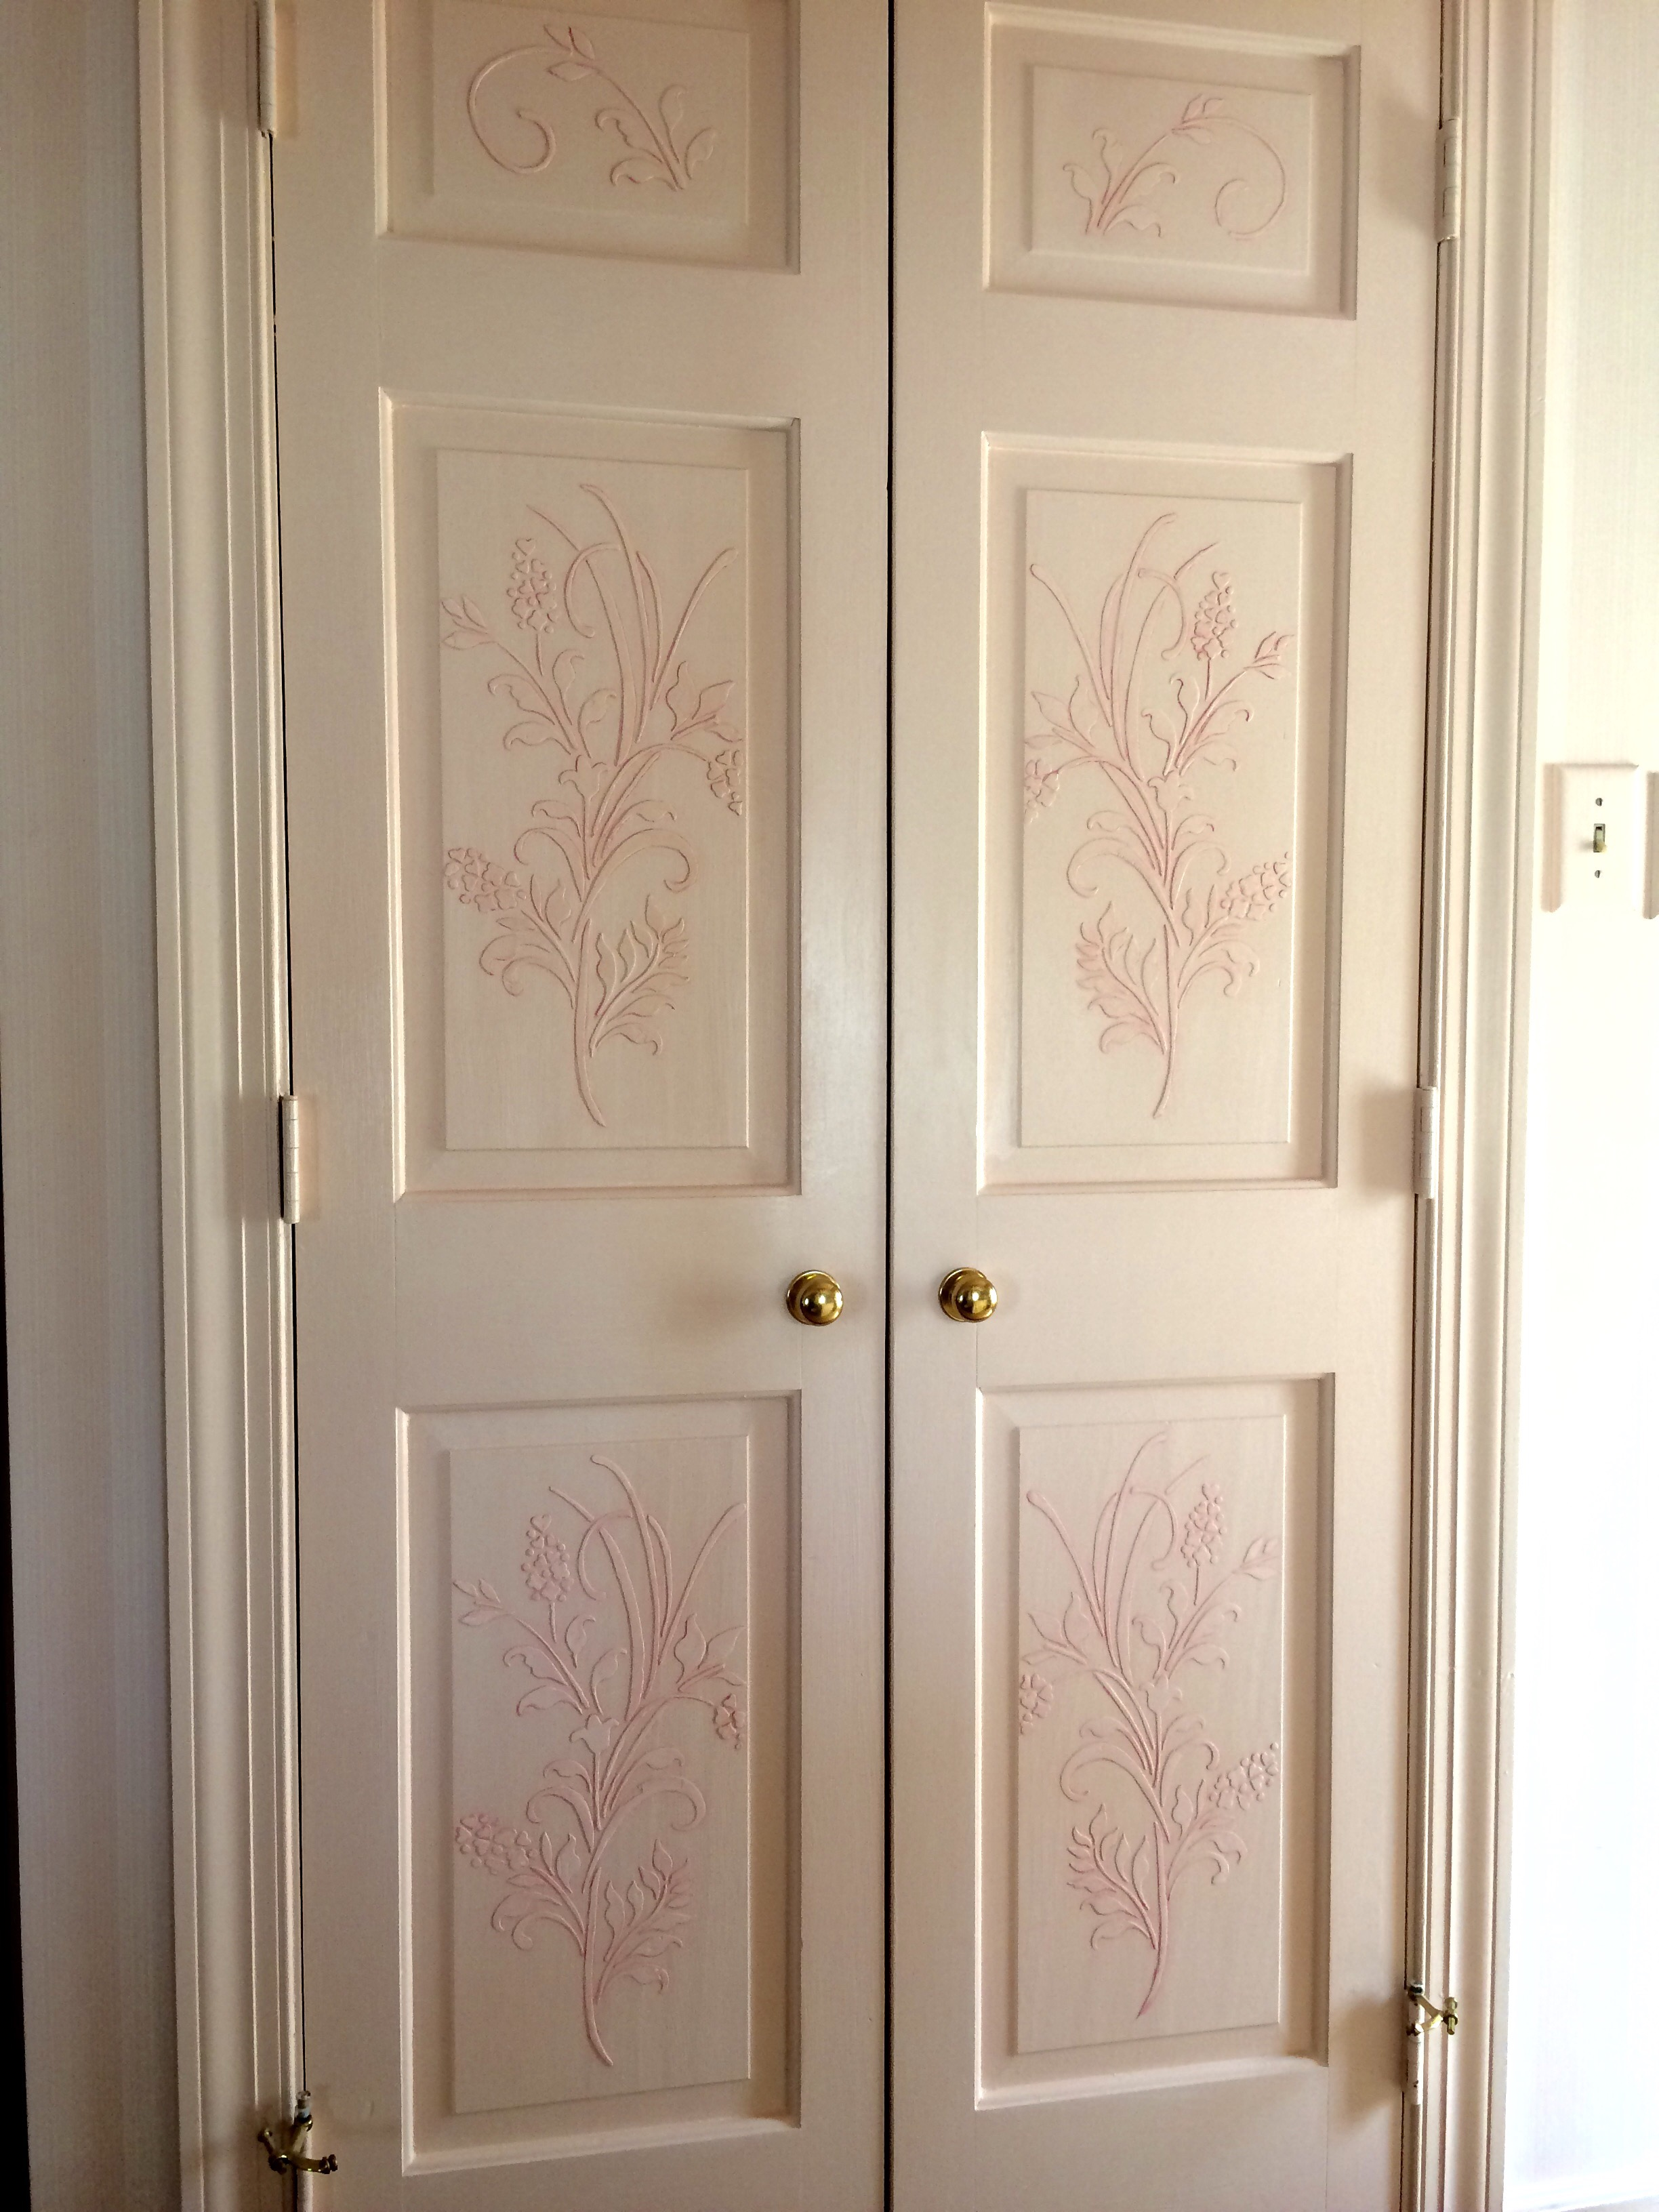 Plaster relief stencil application for bedroom doors